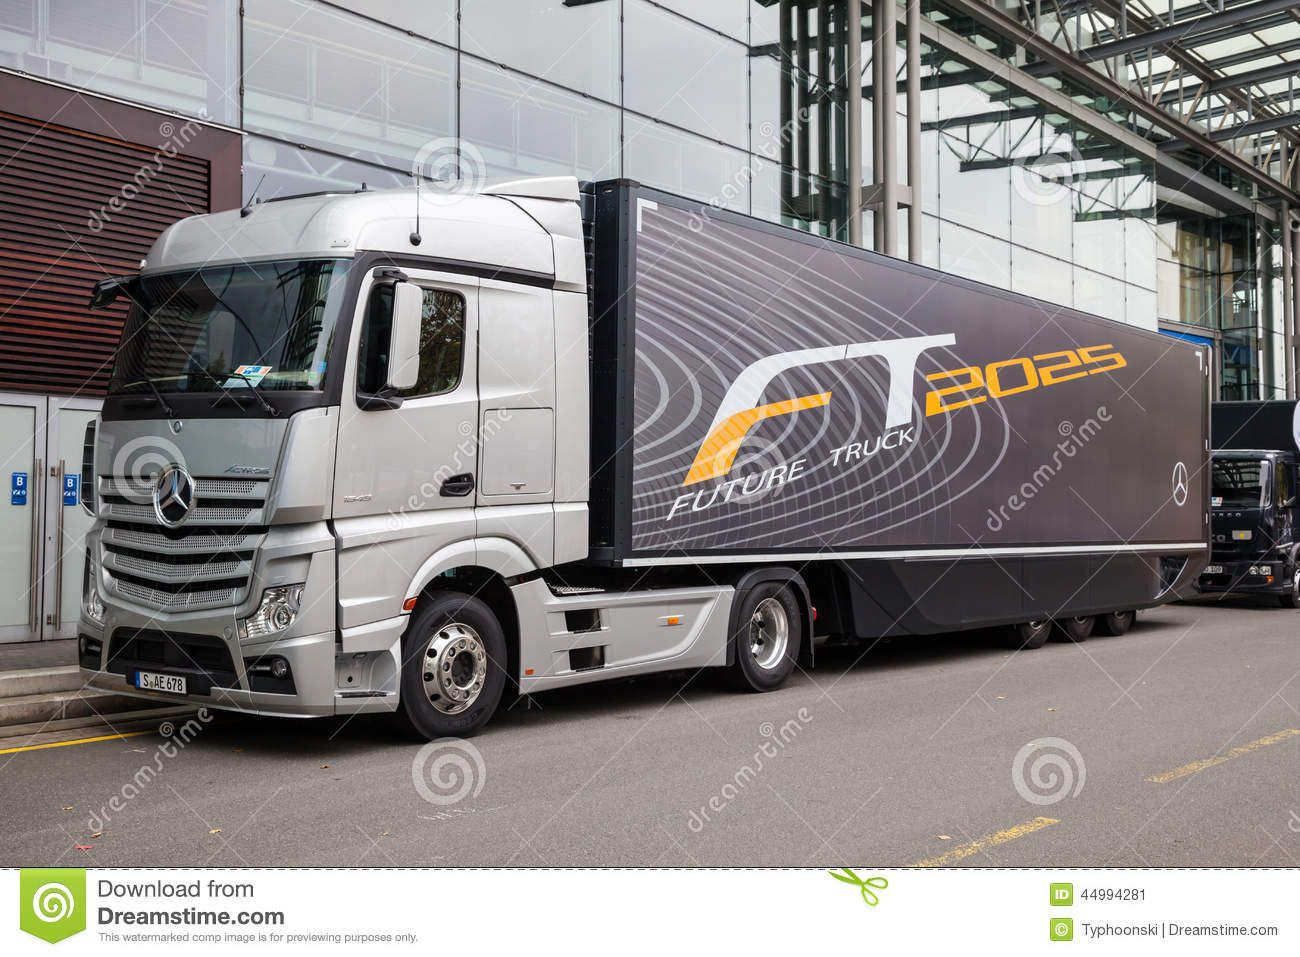 Mercedes benz future truck ft 2025 trailer editorial photo for Mercedes benz commercial trucks